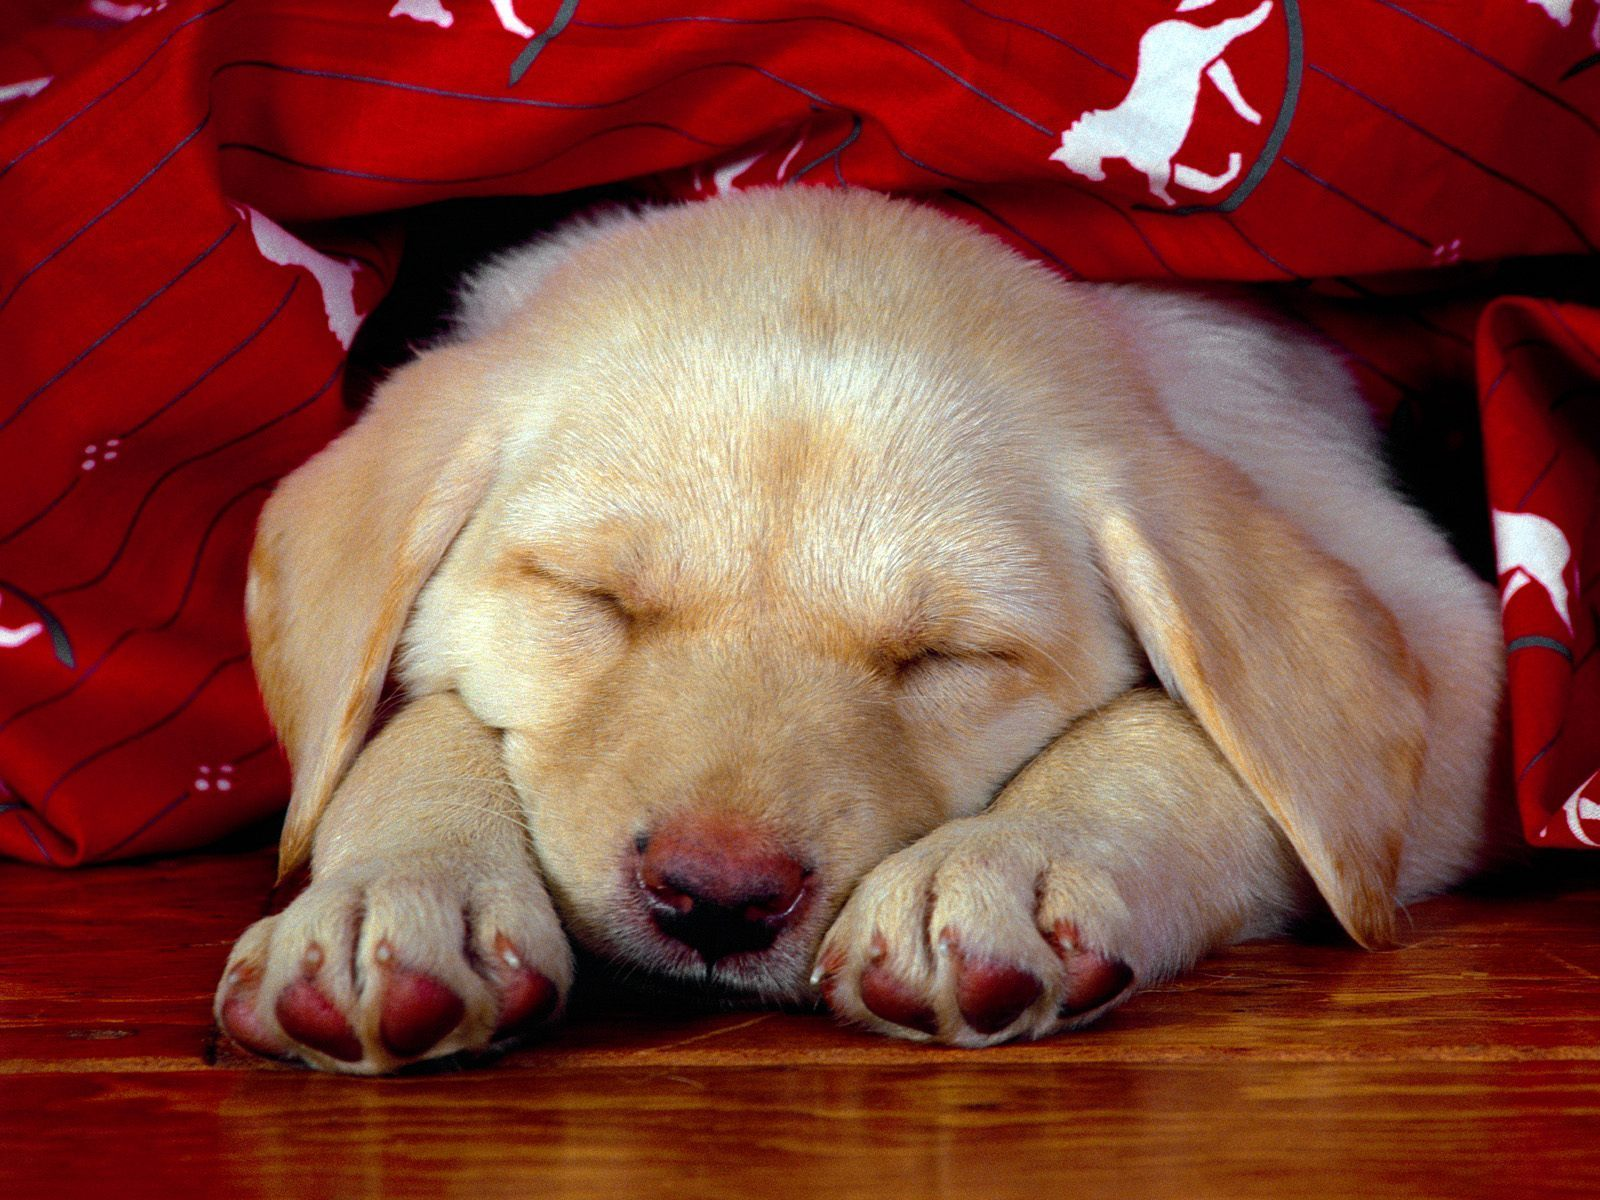 Sweet Dogs Wallpaper Dogs images Cute Dogs ...